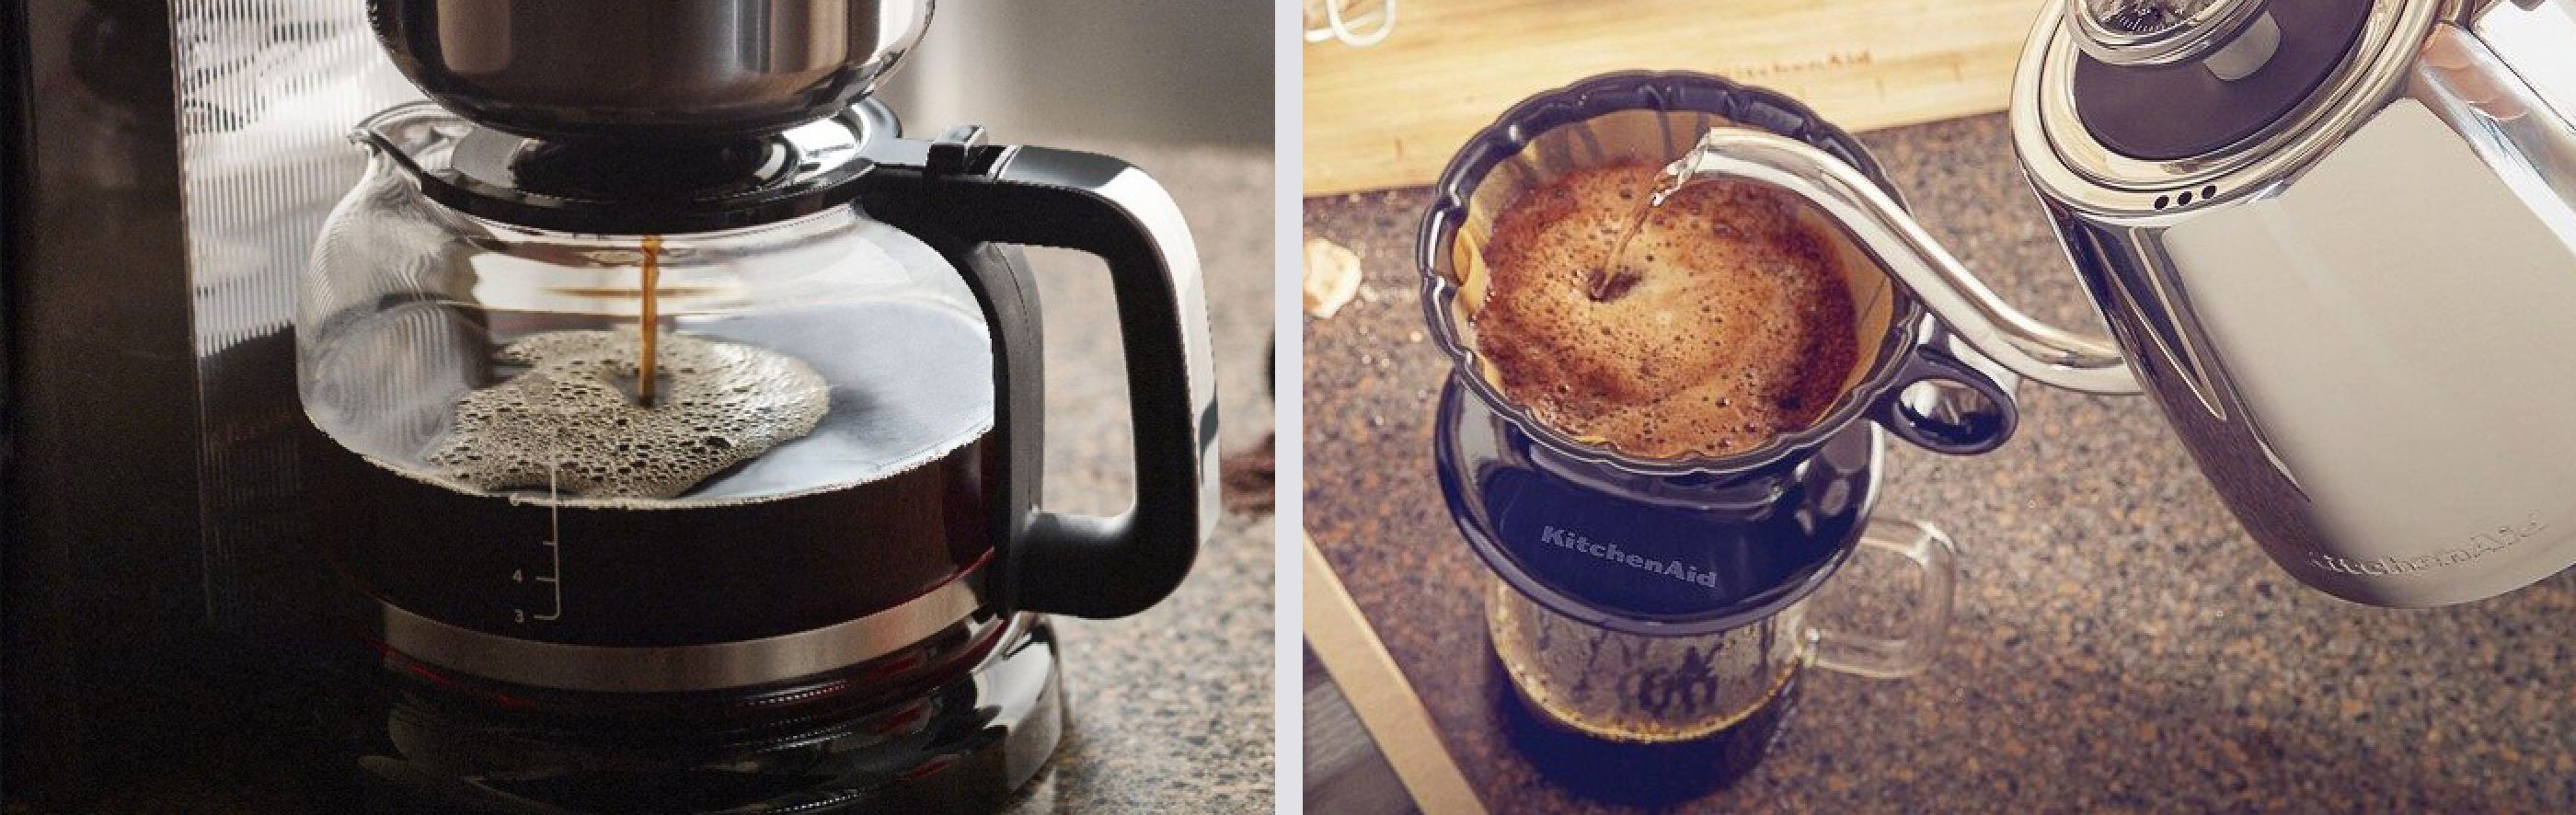 Auto drip coffee maker next to pour over coffee being made with a gooseneck kettle